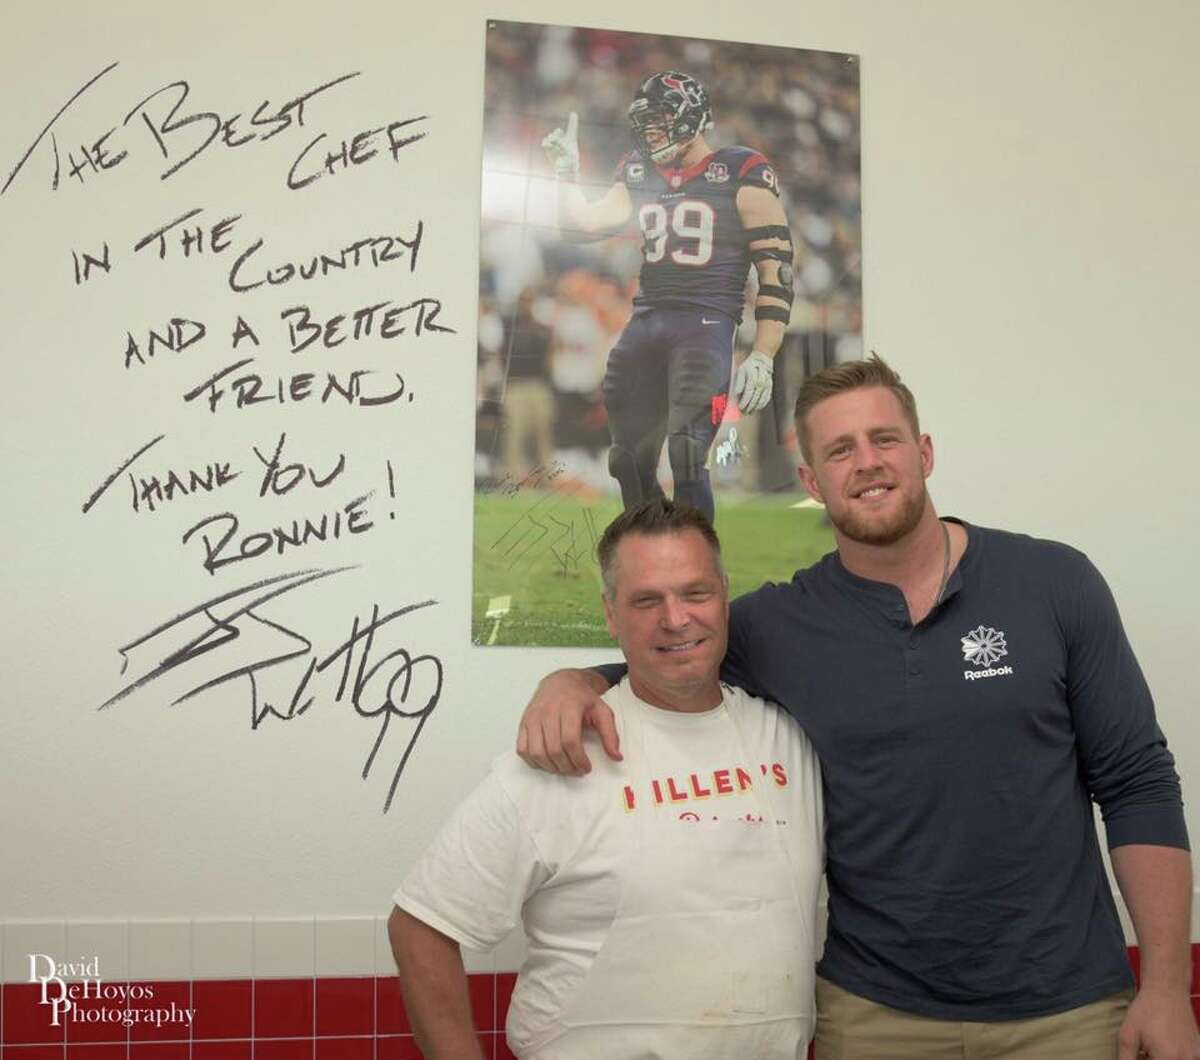 J.J. Watt The recently opened Killen's Burgers in Pearland includes a tribute to Texans star Watt called the #99 Burger. It consists of two 10-ounce patties with Wisconsin yellow cheddar cheese and Nueske's bacon. It's served with a side of Wisconsin cheese curds.